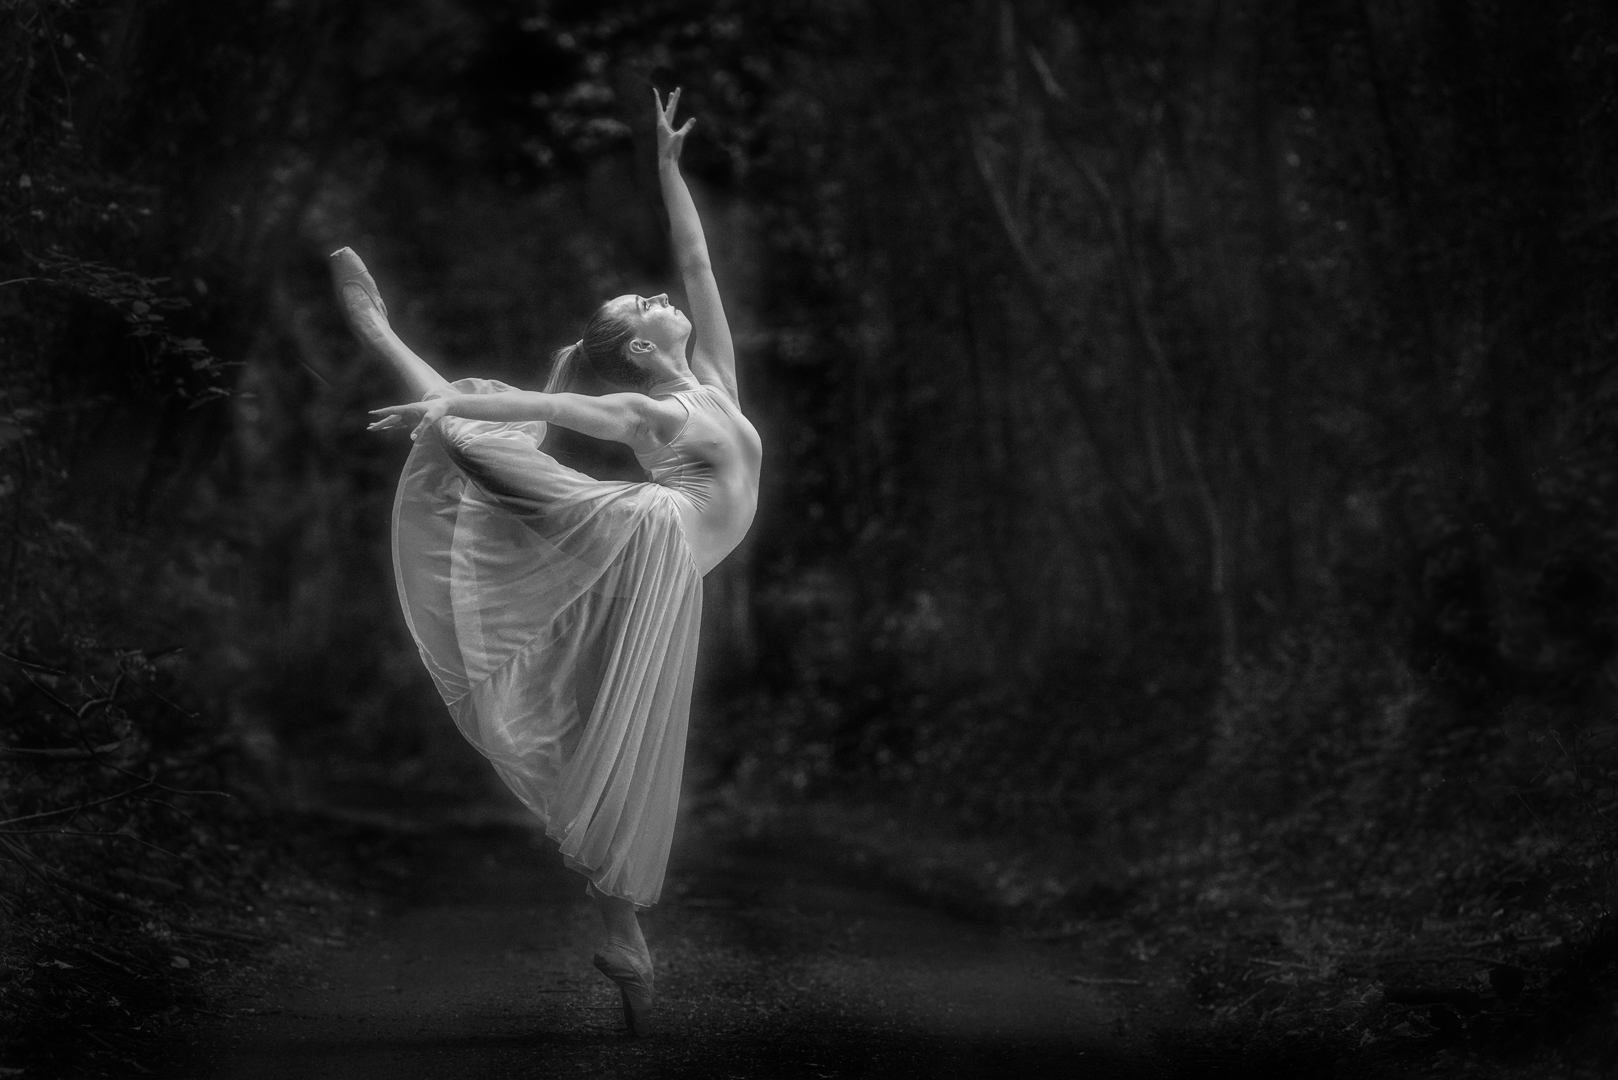 Dancing in the moonlight. Gold medal for monochrome in the KCPA exhibition 2019.